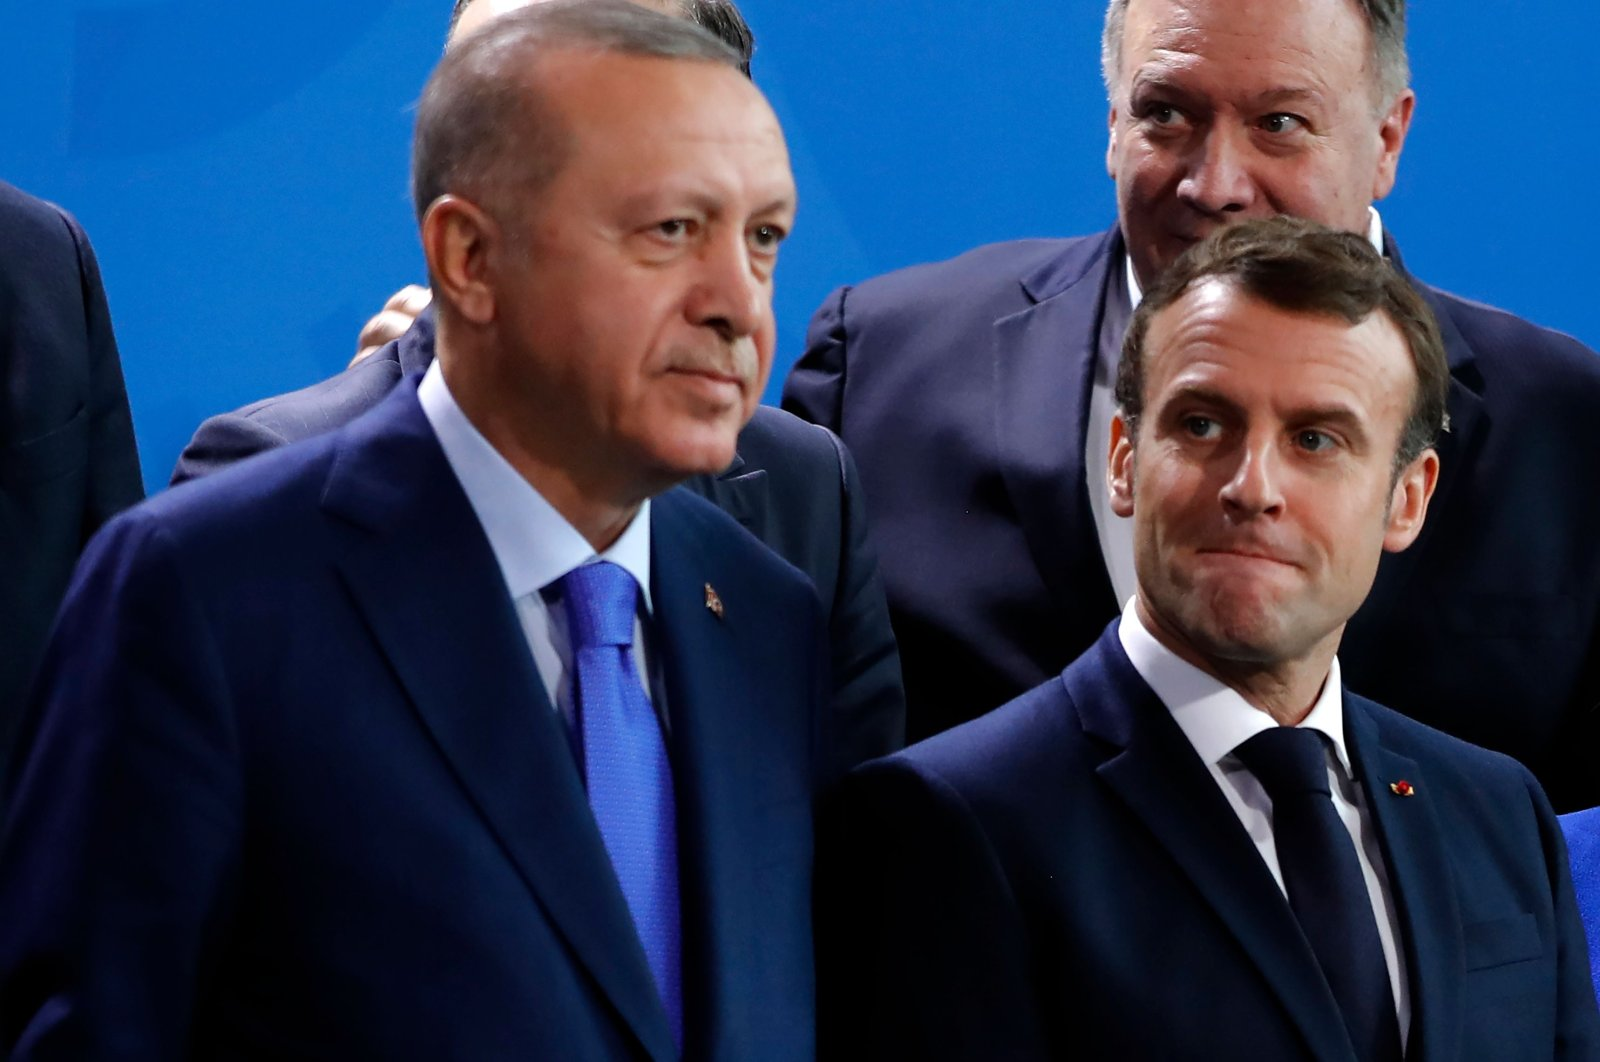 President Recep Tayyip Erdoğan (L) and French President Emmanuel Macron stand side-by-side as they wait for a picture during a Peace summit on Libya at the Chancellery in Berlin, Jan.19, 2020. (AFP)